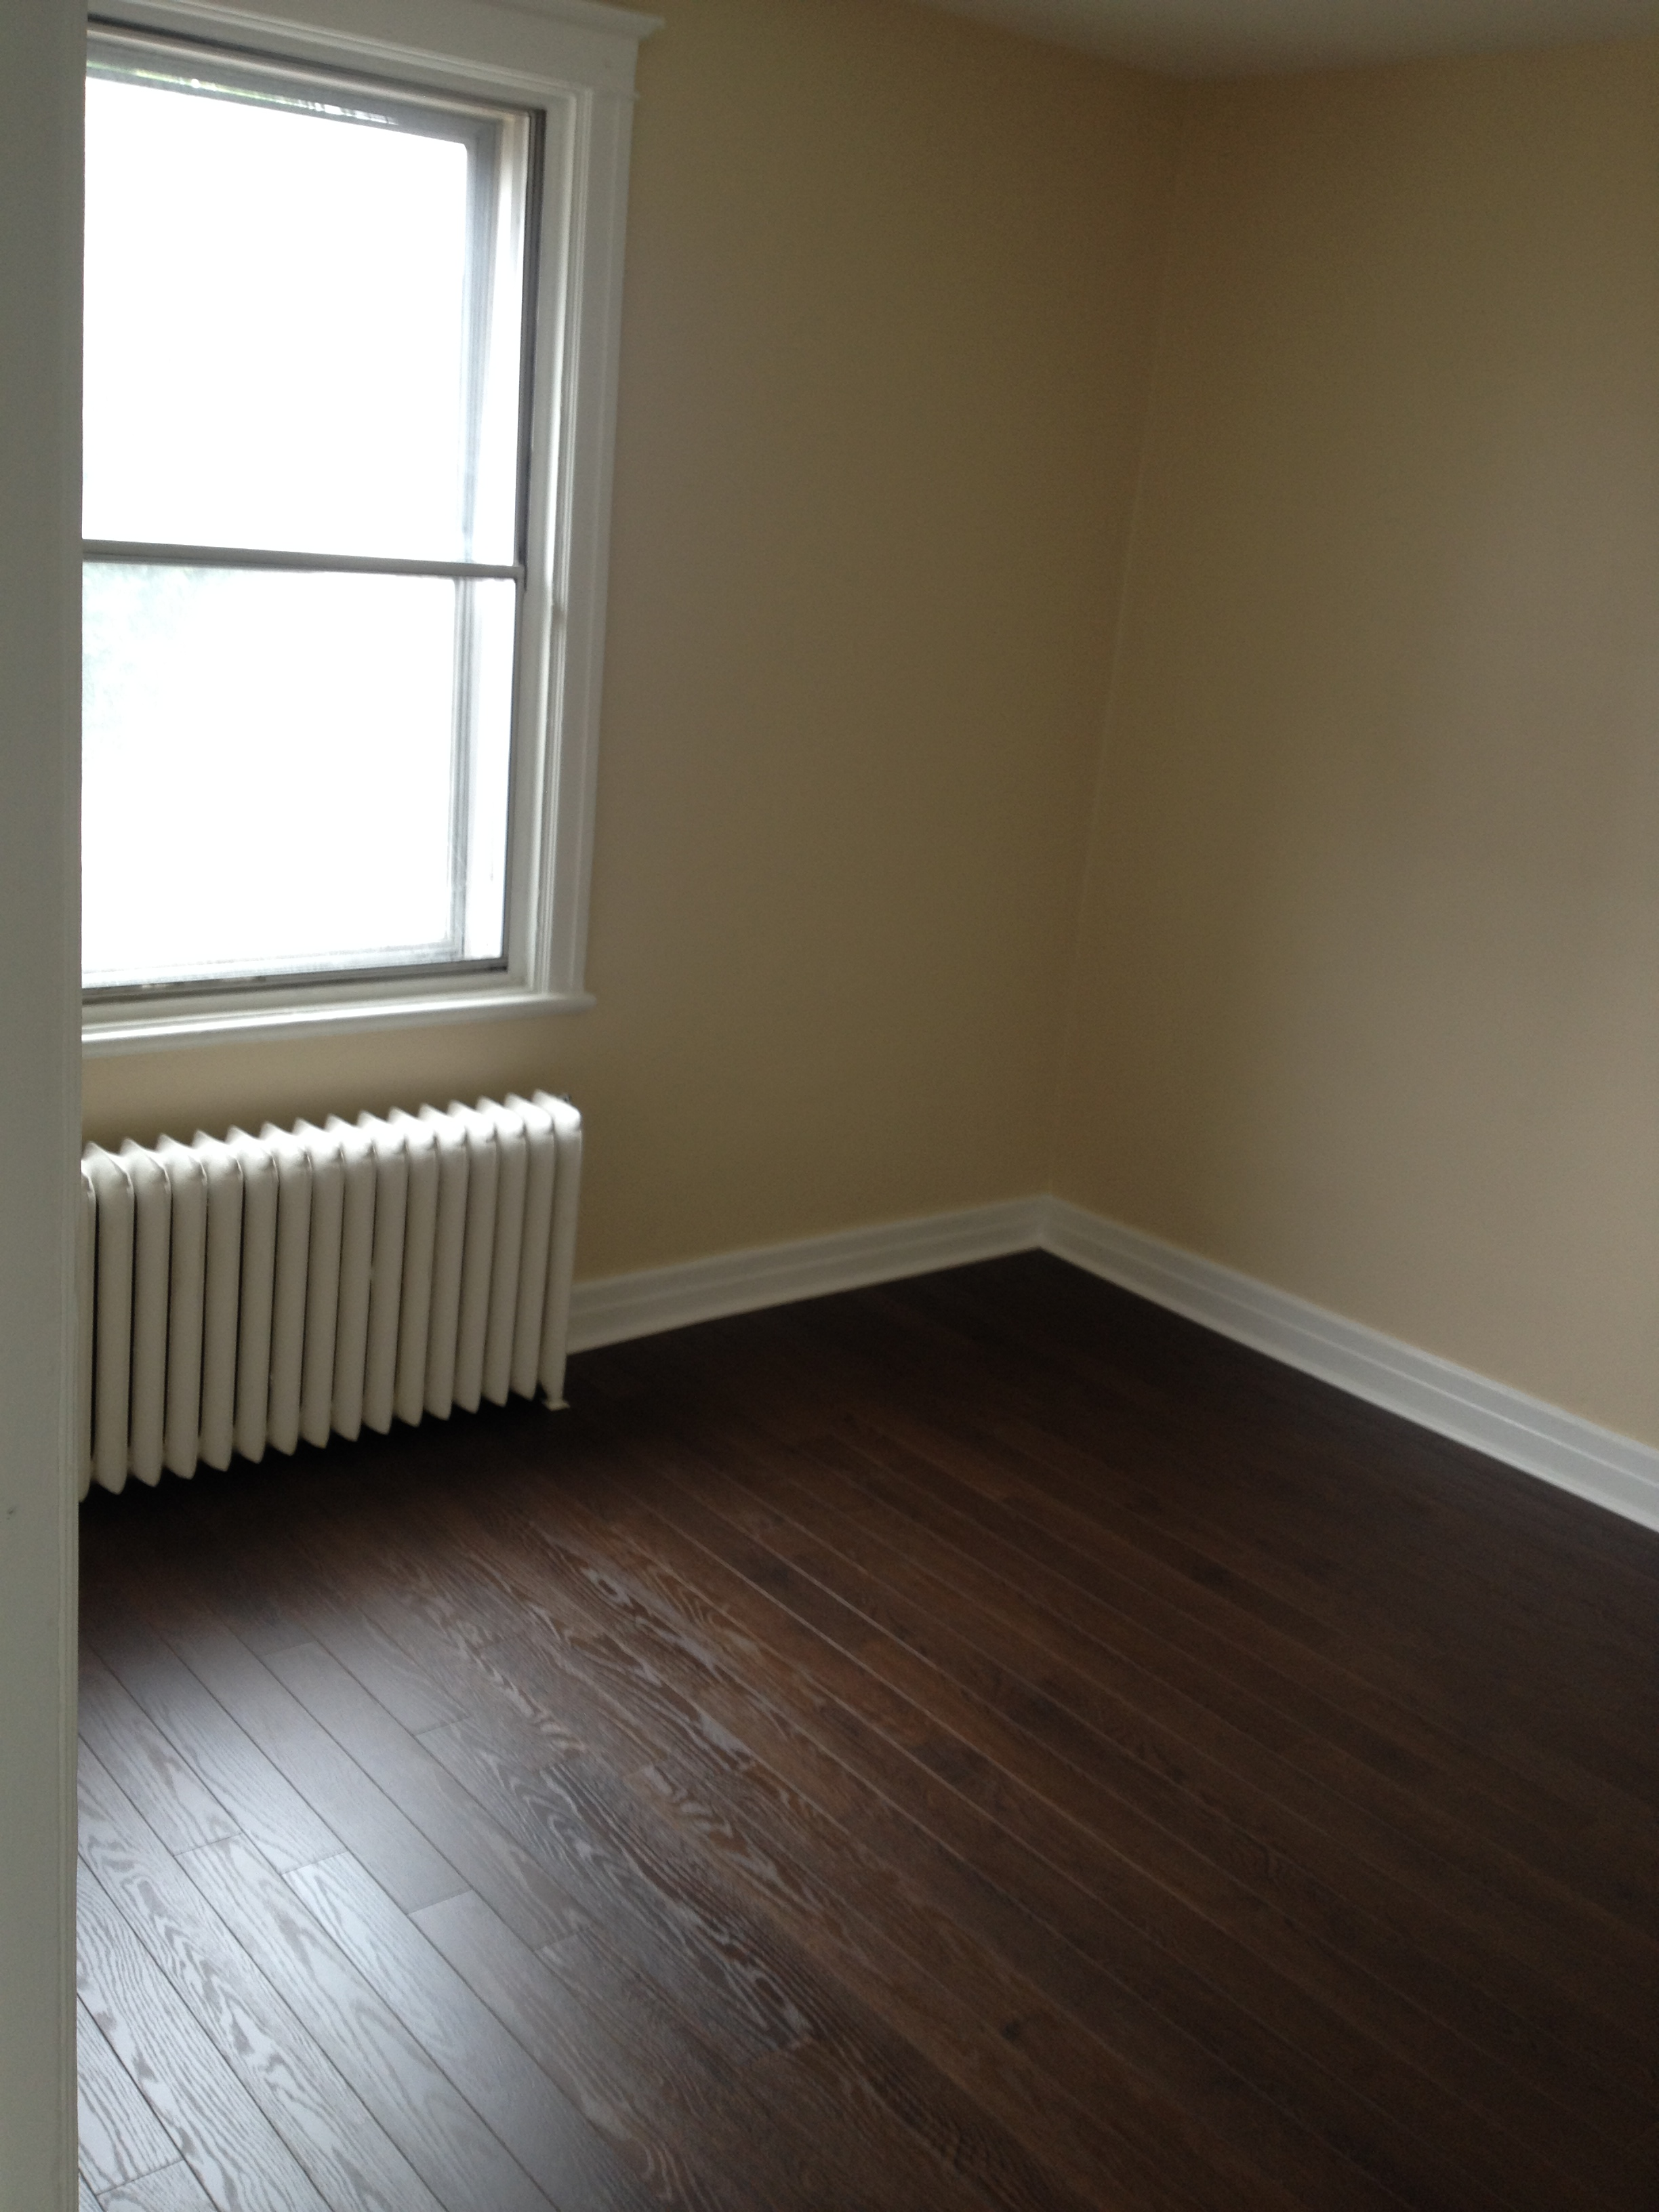 2 bedroom Apartments for rent in Cote-St-Luc at 5430 Cote Saint Luc - Photo 03 - RentQuebecApartments – L112094